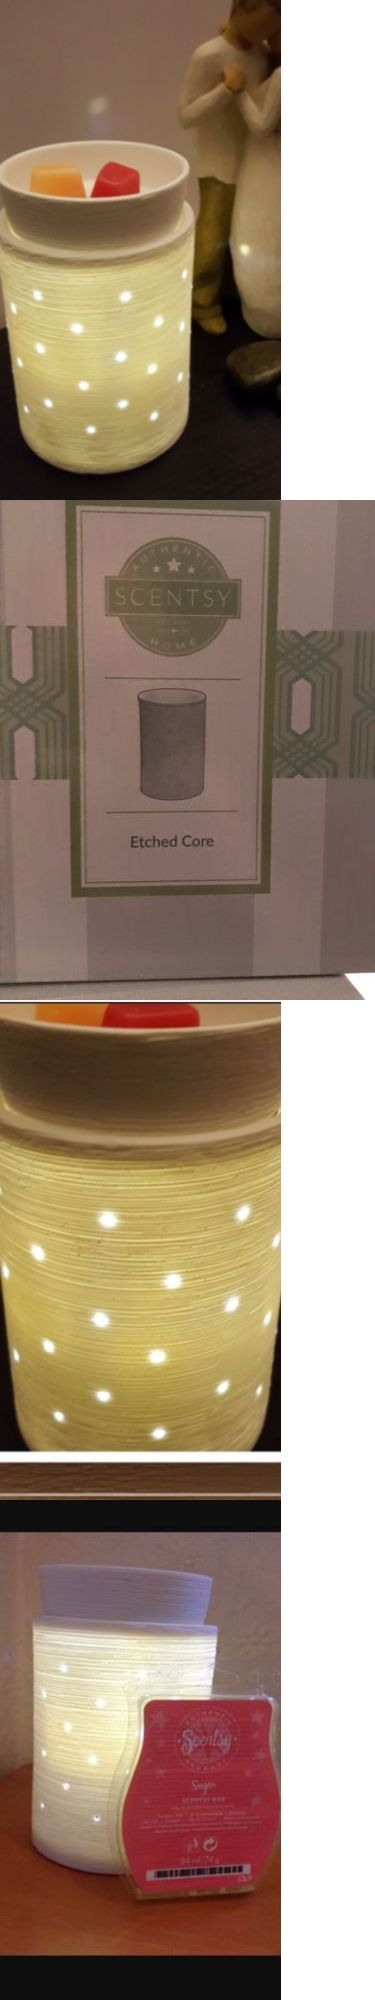 Other Home Fragrances 36925: Etched Core Electrical Wax Melting Warmer, Lights -> BUY IT NOW ONLY: $32 on eBay!